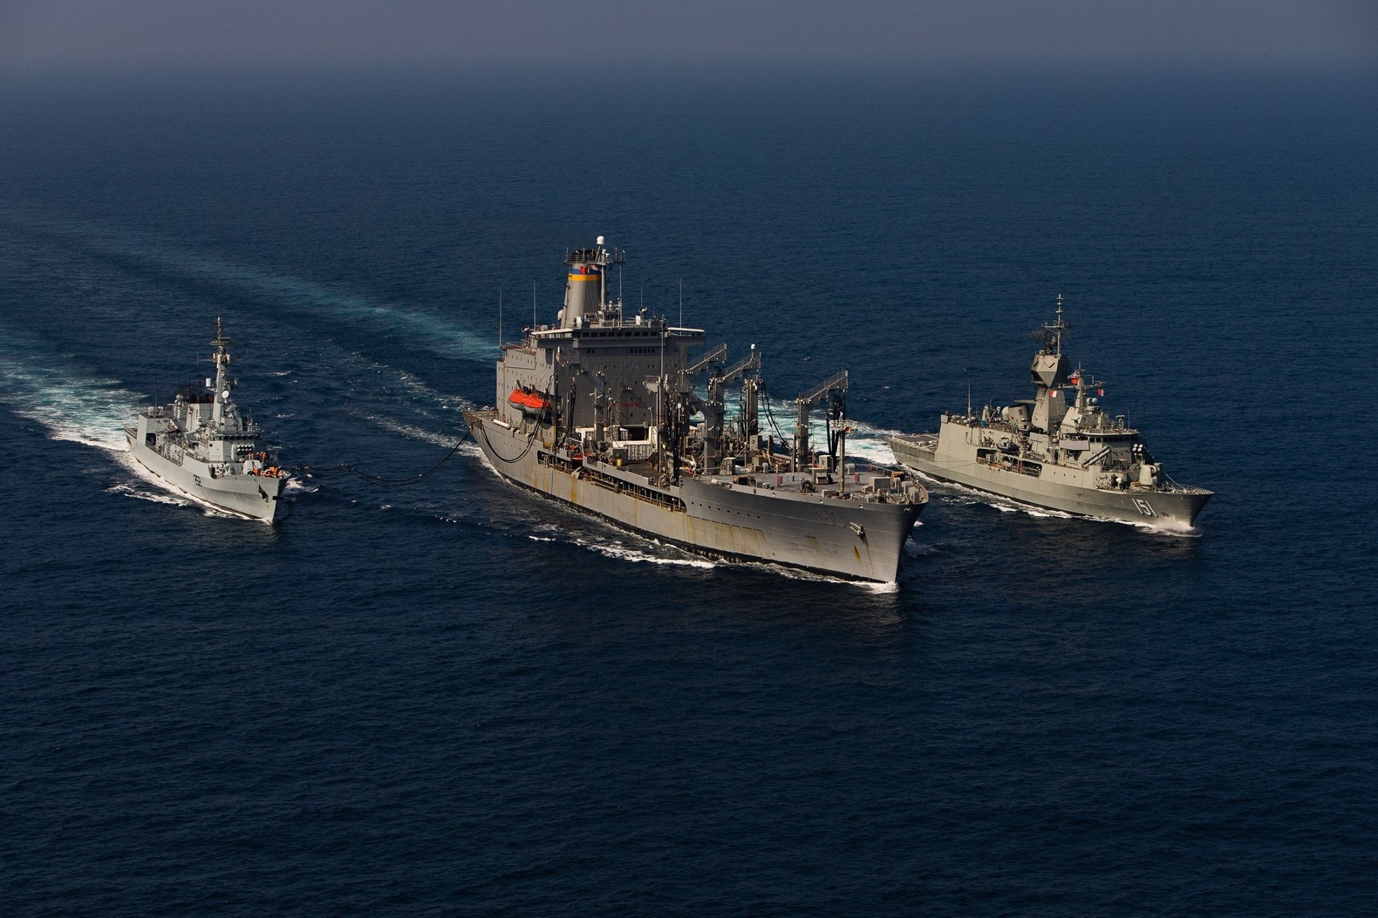 Ships conduct replenishment-at-sea operations